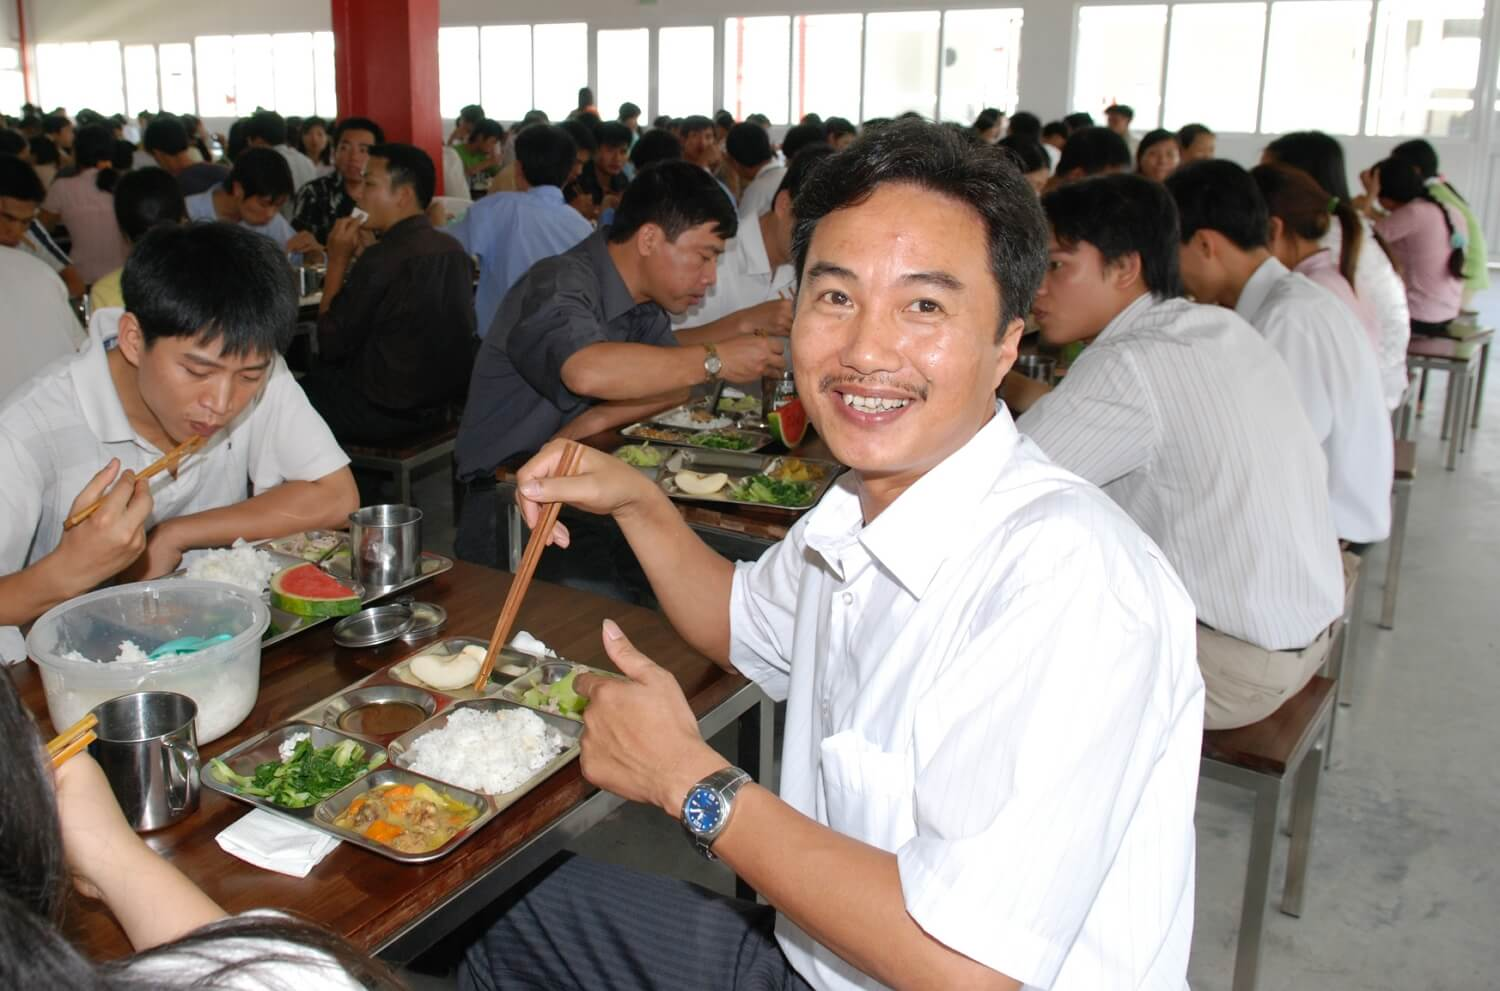 Vietnam - Zdrowi pracownicy - people eating lunch